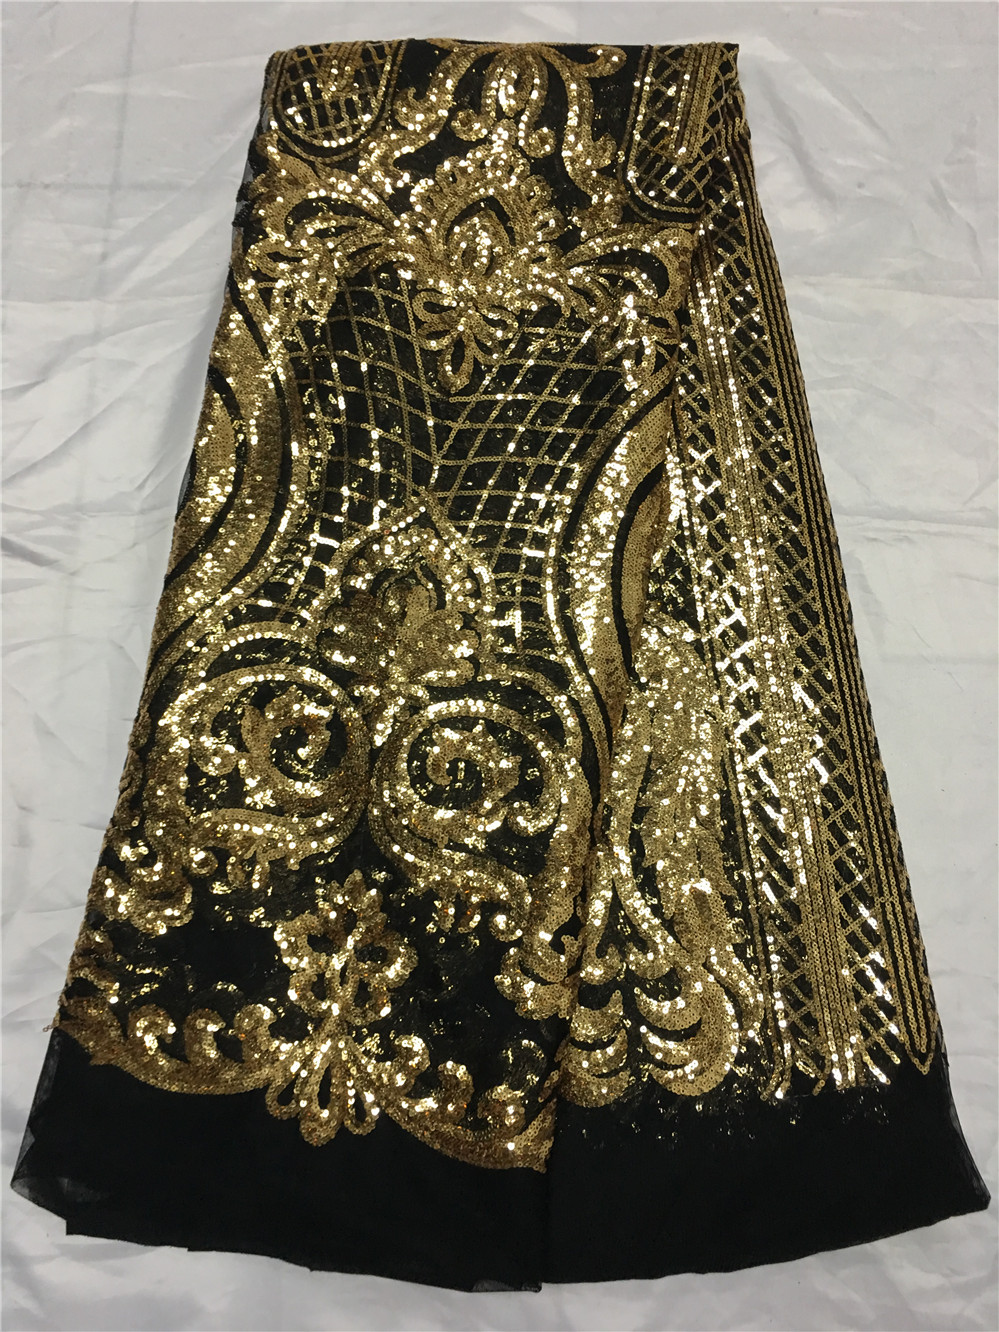 African Lace Fabric Gold Sequins Black Mesh Lace High